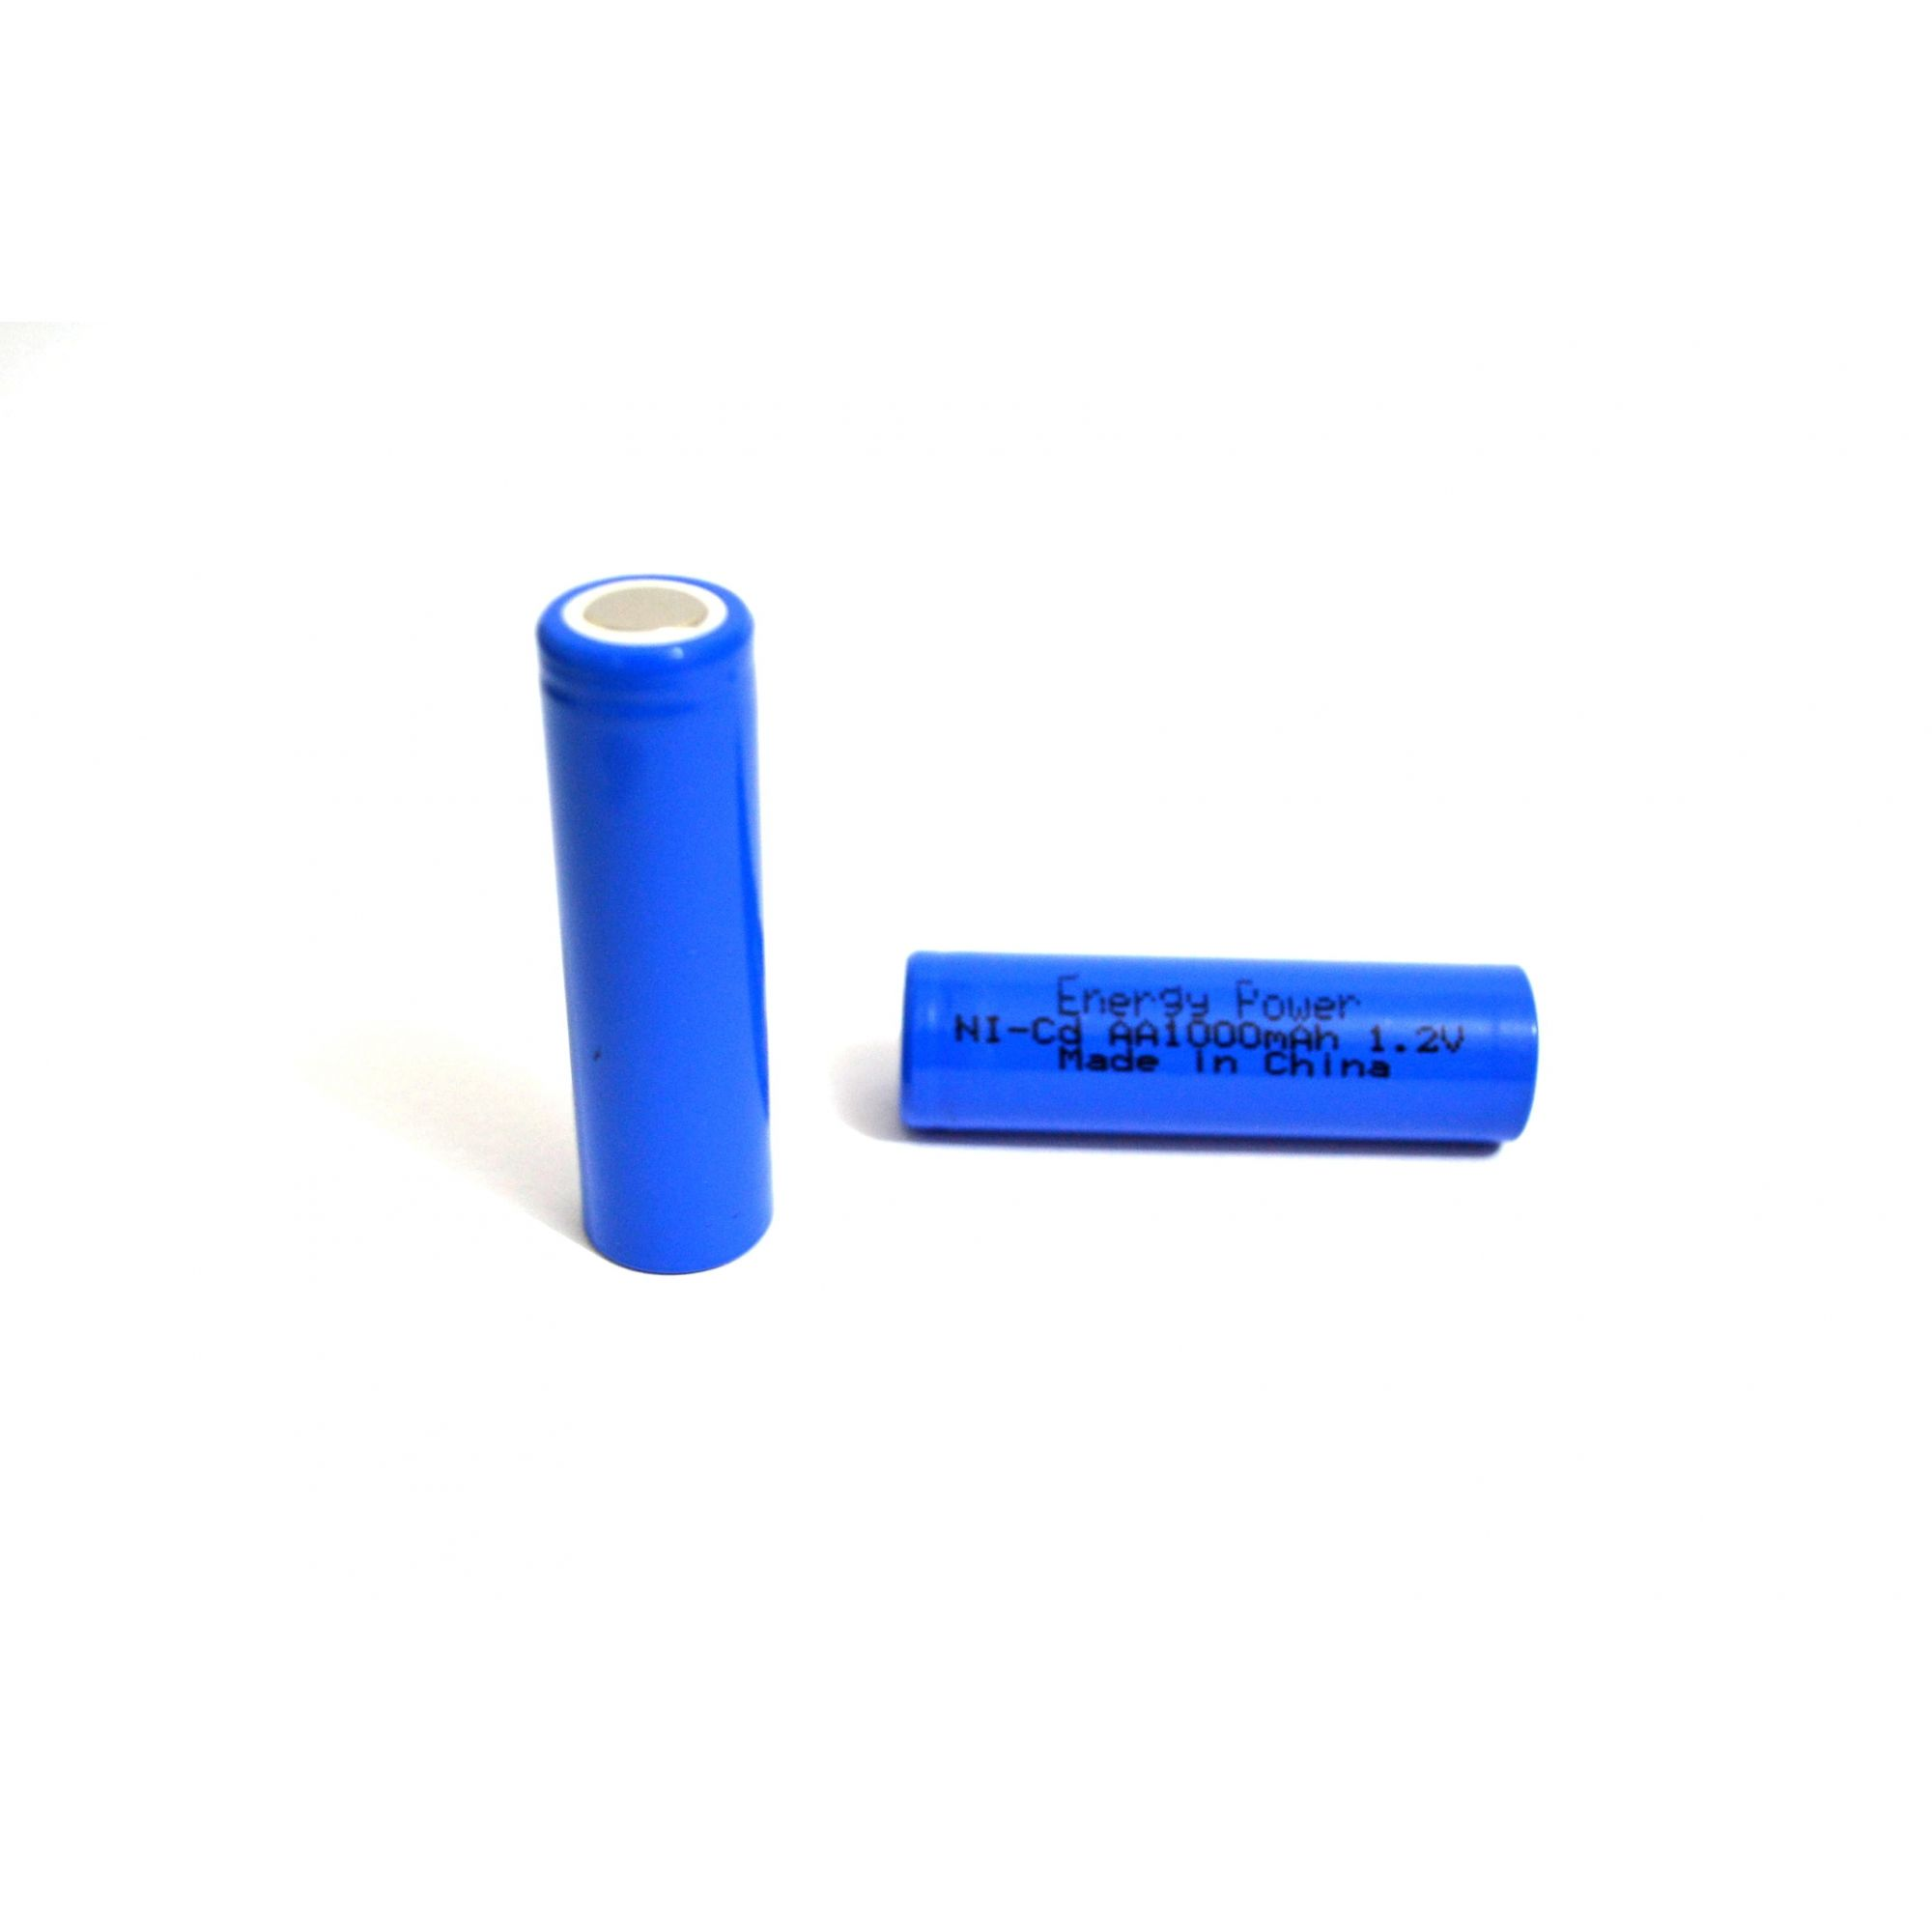 BATERIA ENERGY POWER AA 1000MAH 1,2V NI-CD